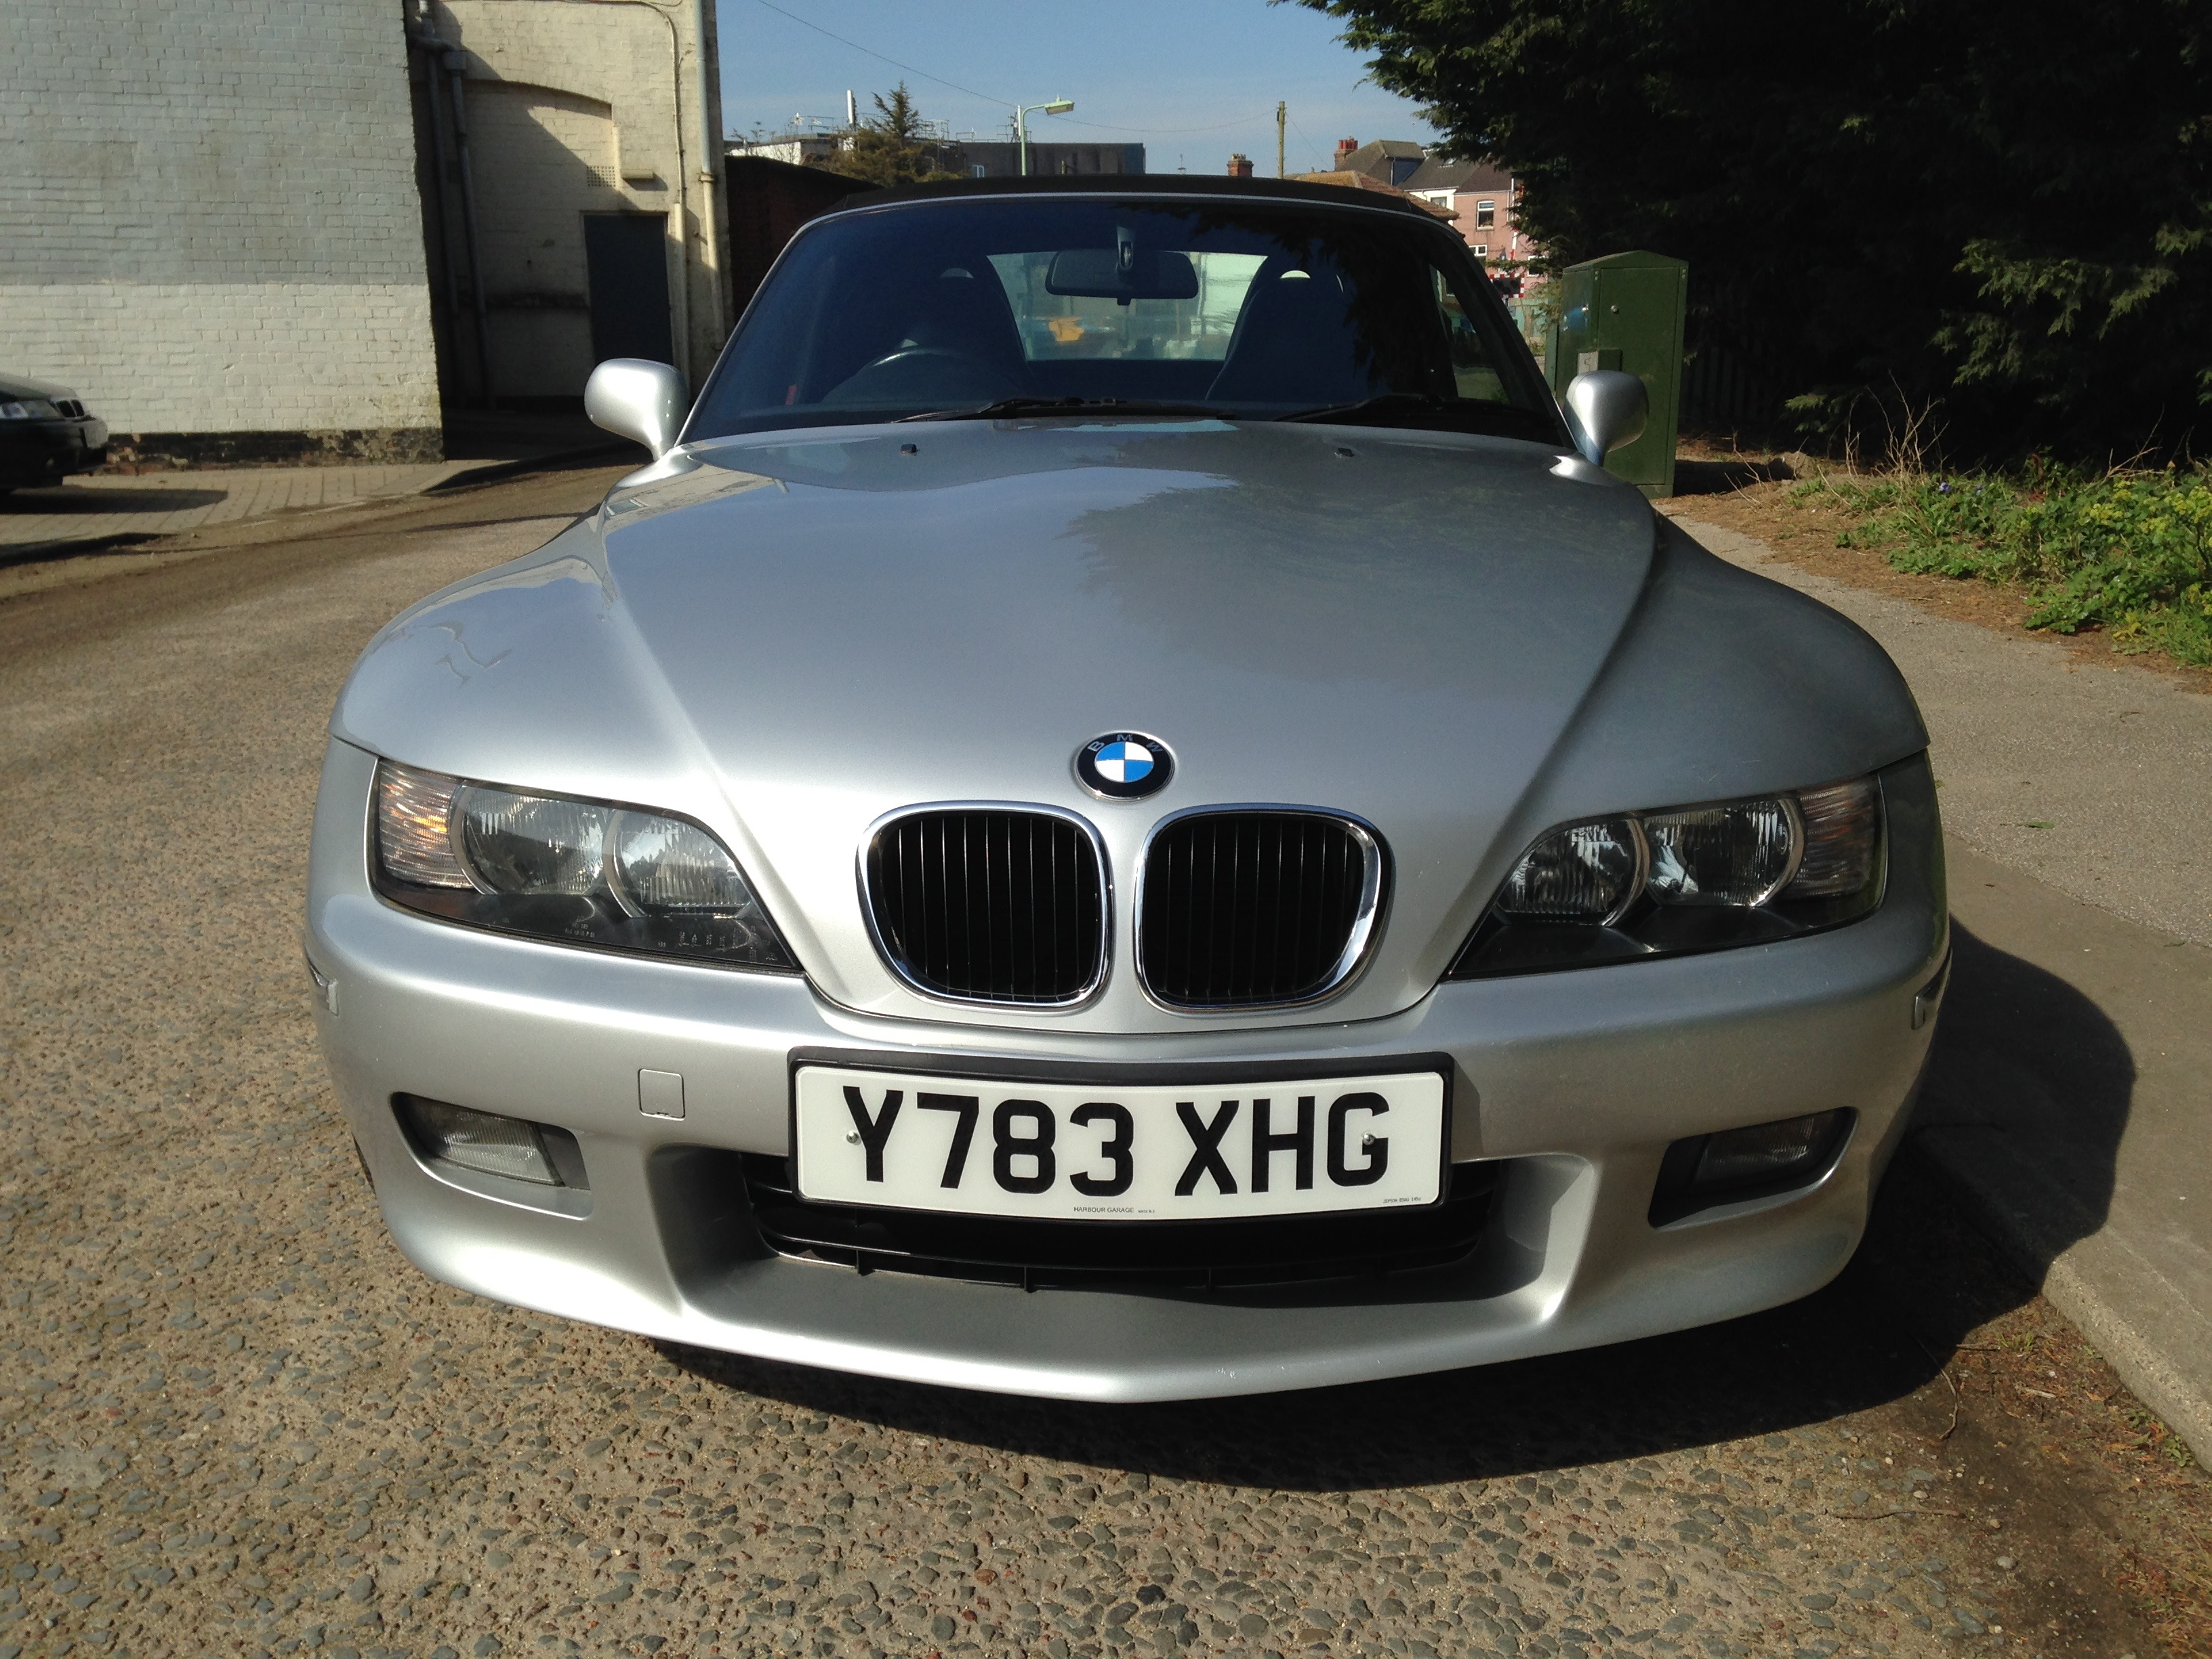 2001 Bmw Z3 2 2 This Bmw Z3 Is The Desirable 2 2 6 Cylinder Engined Model Providing Spirited